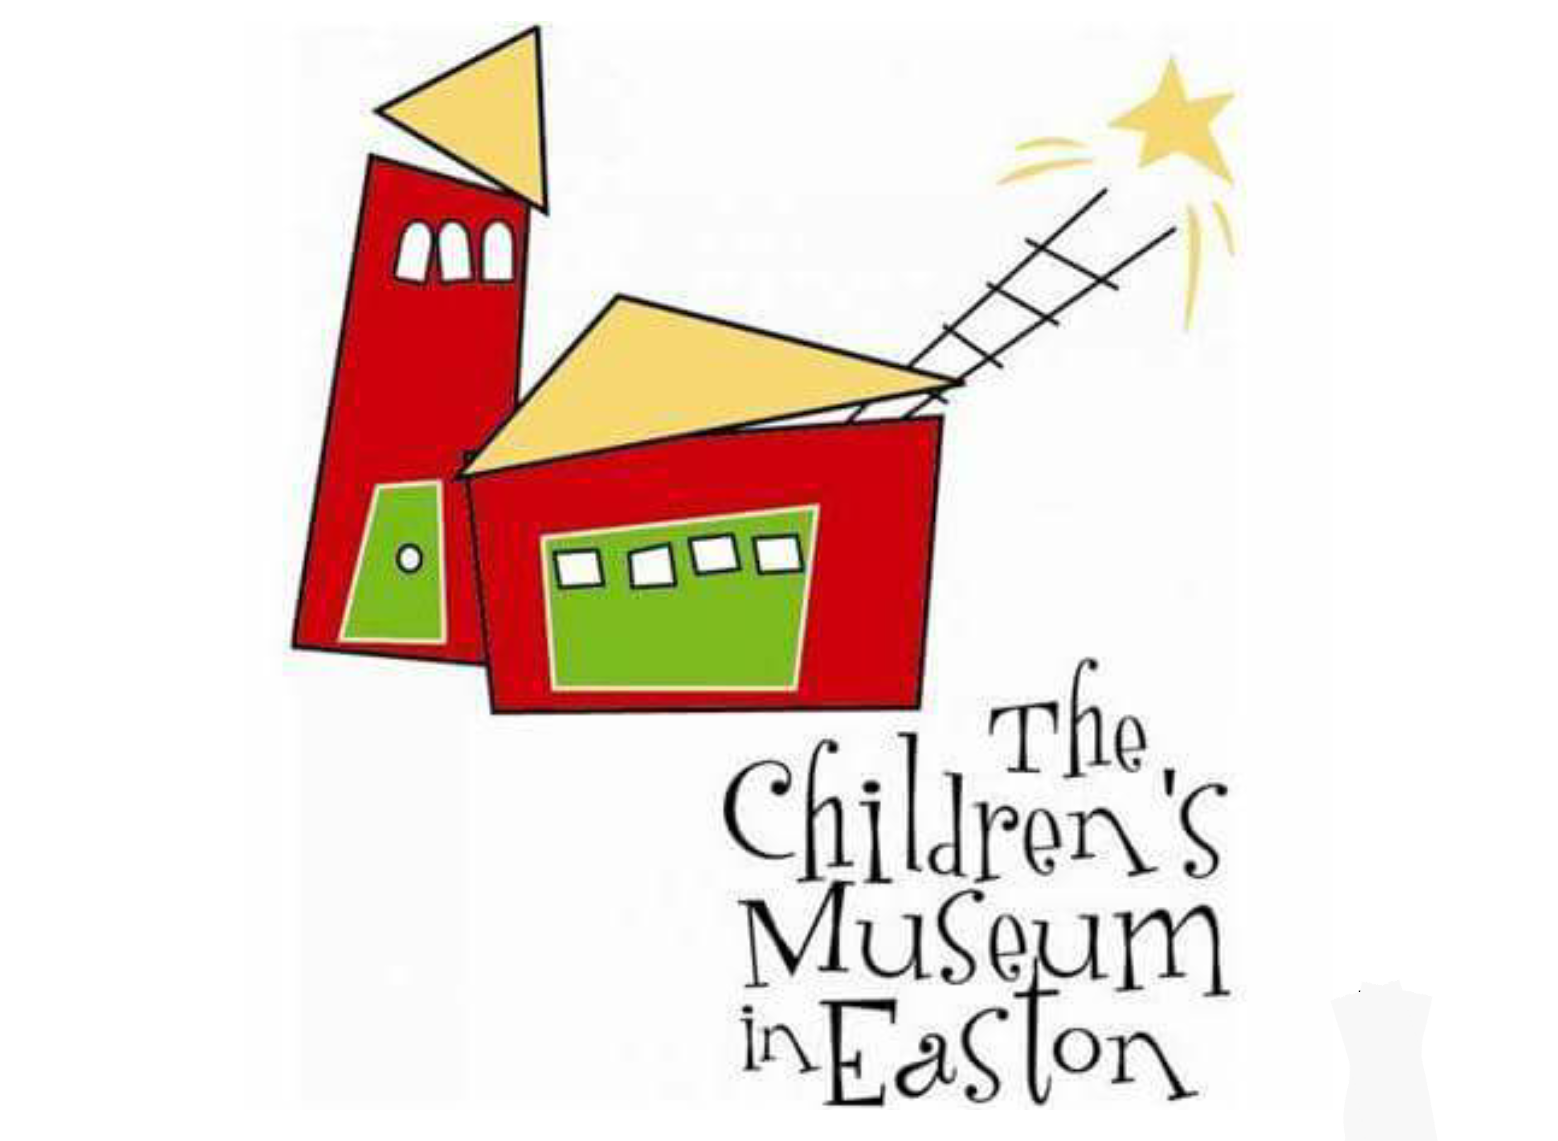 The Childrens Museum in Easton